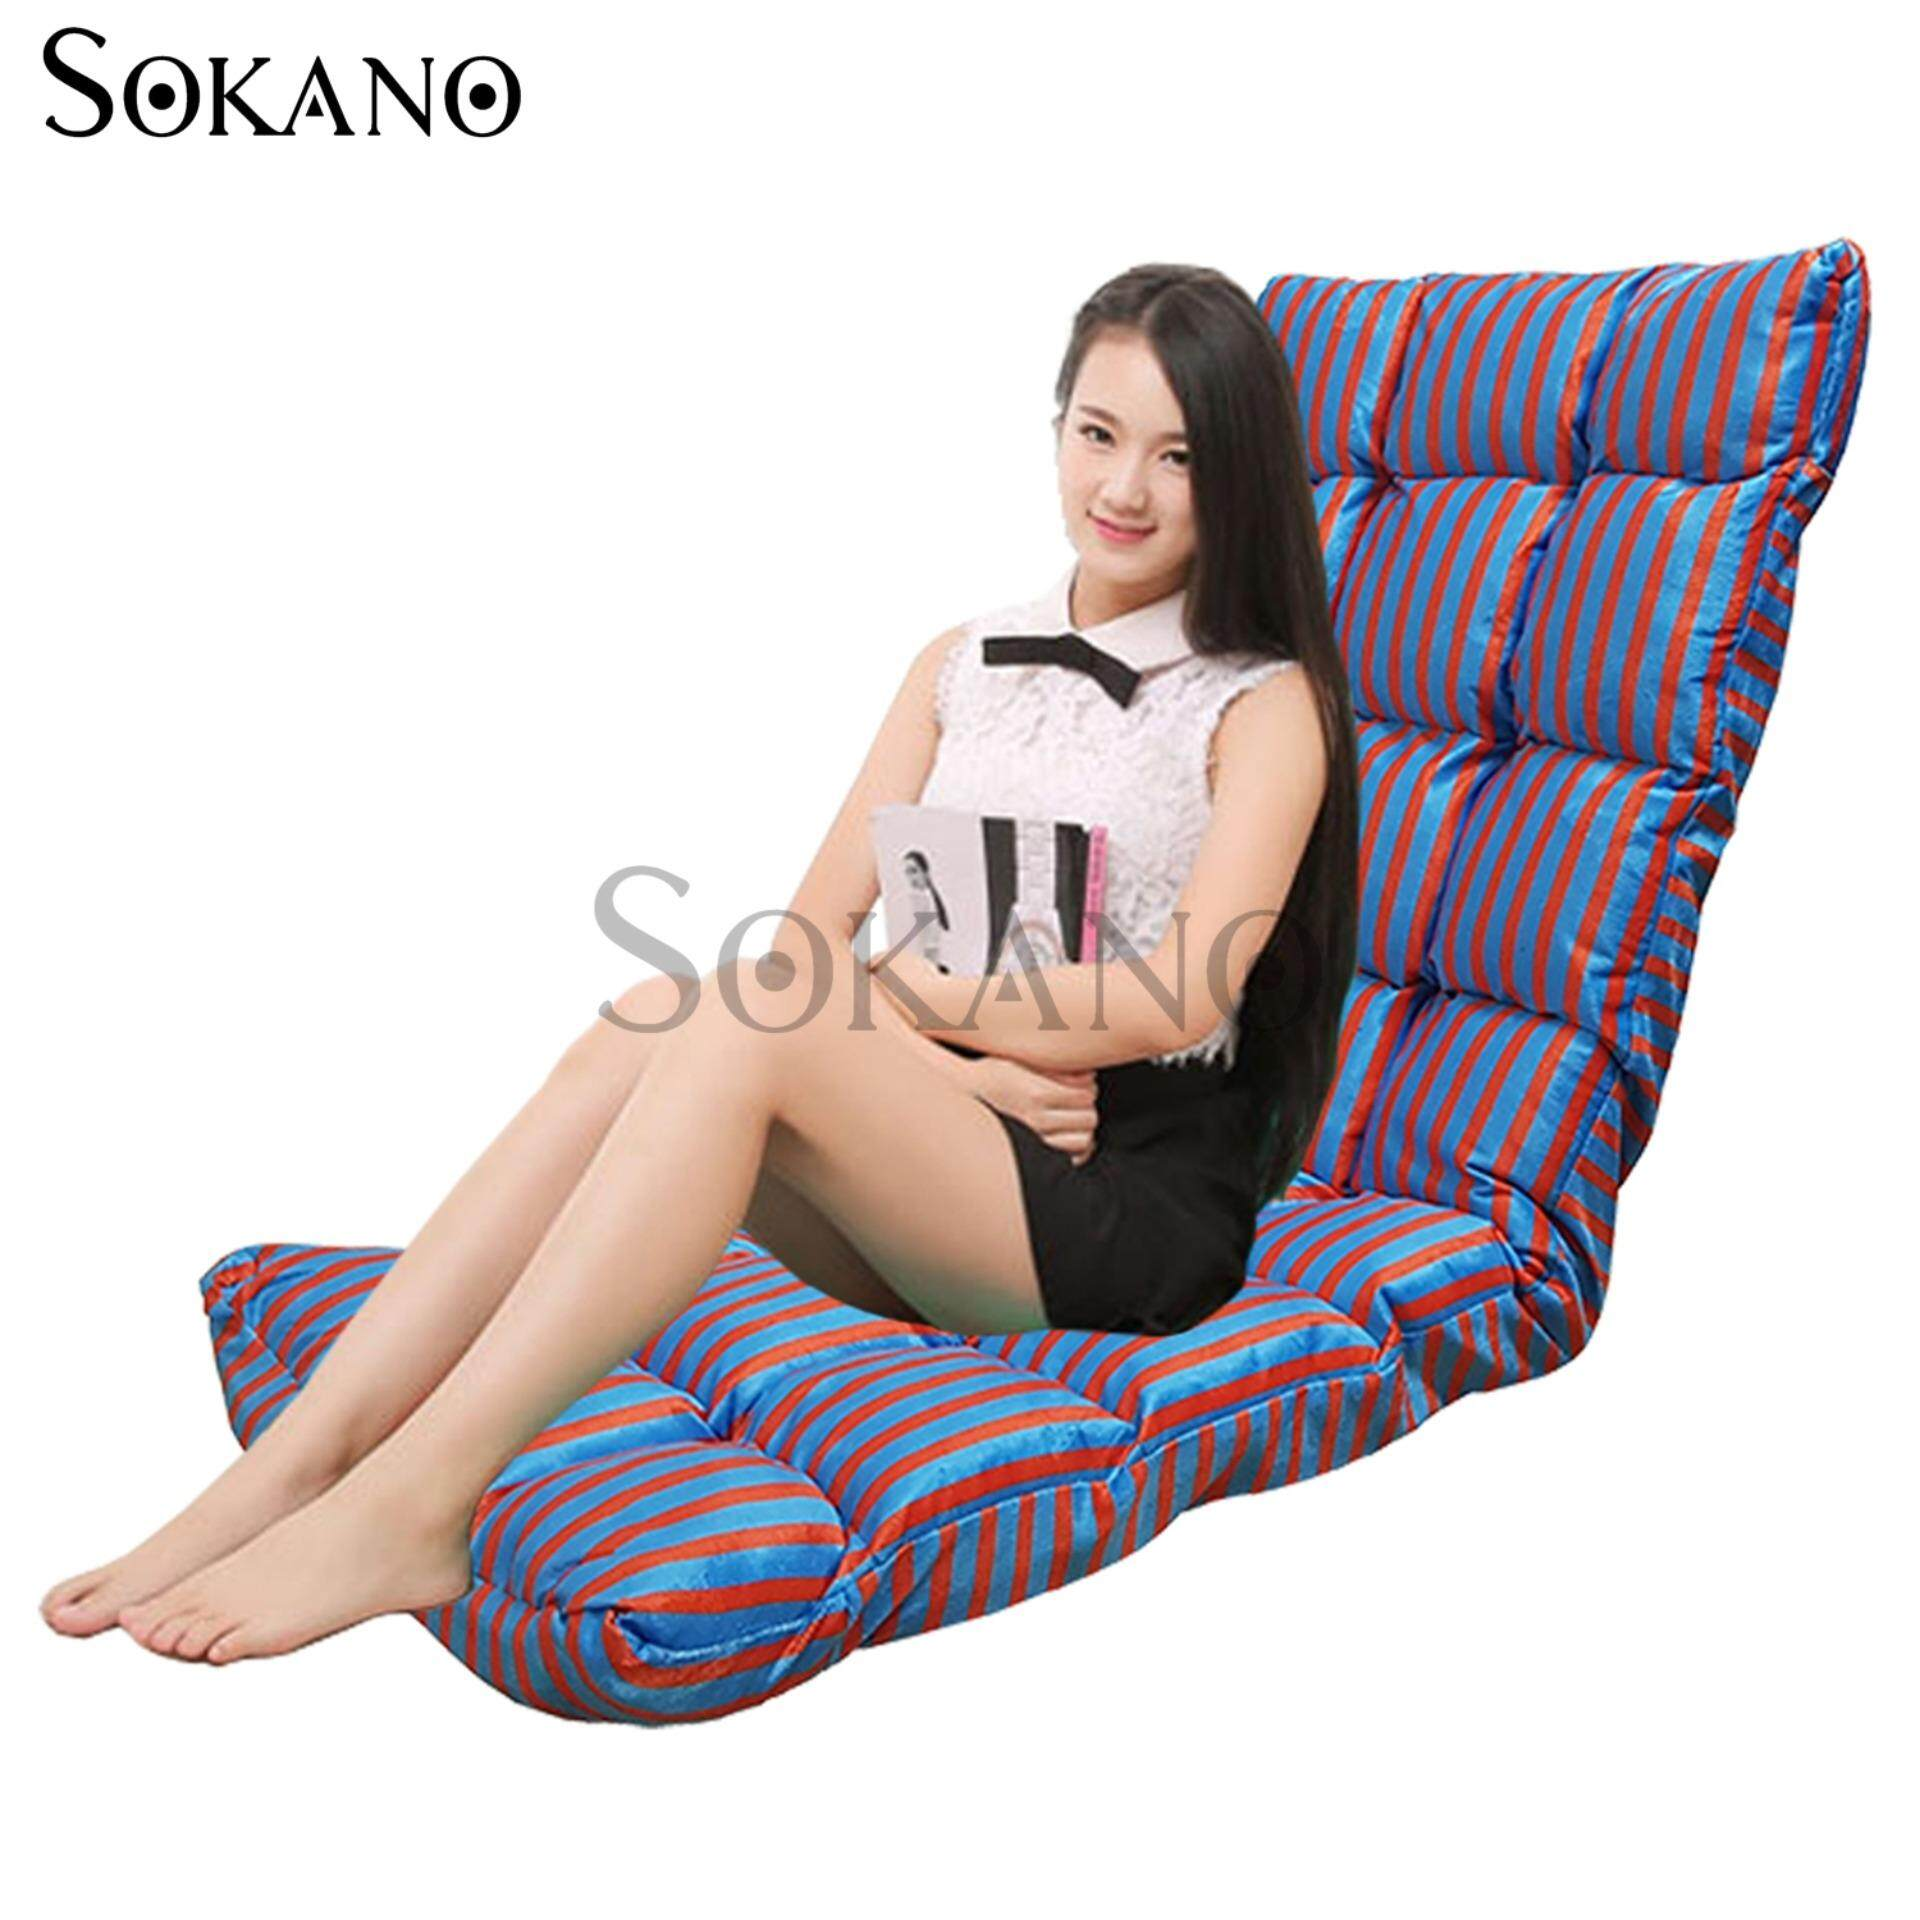 SOKANO SF005 XL Size Foldable Sofa Futon(147cm)- Blue Orange Strips